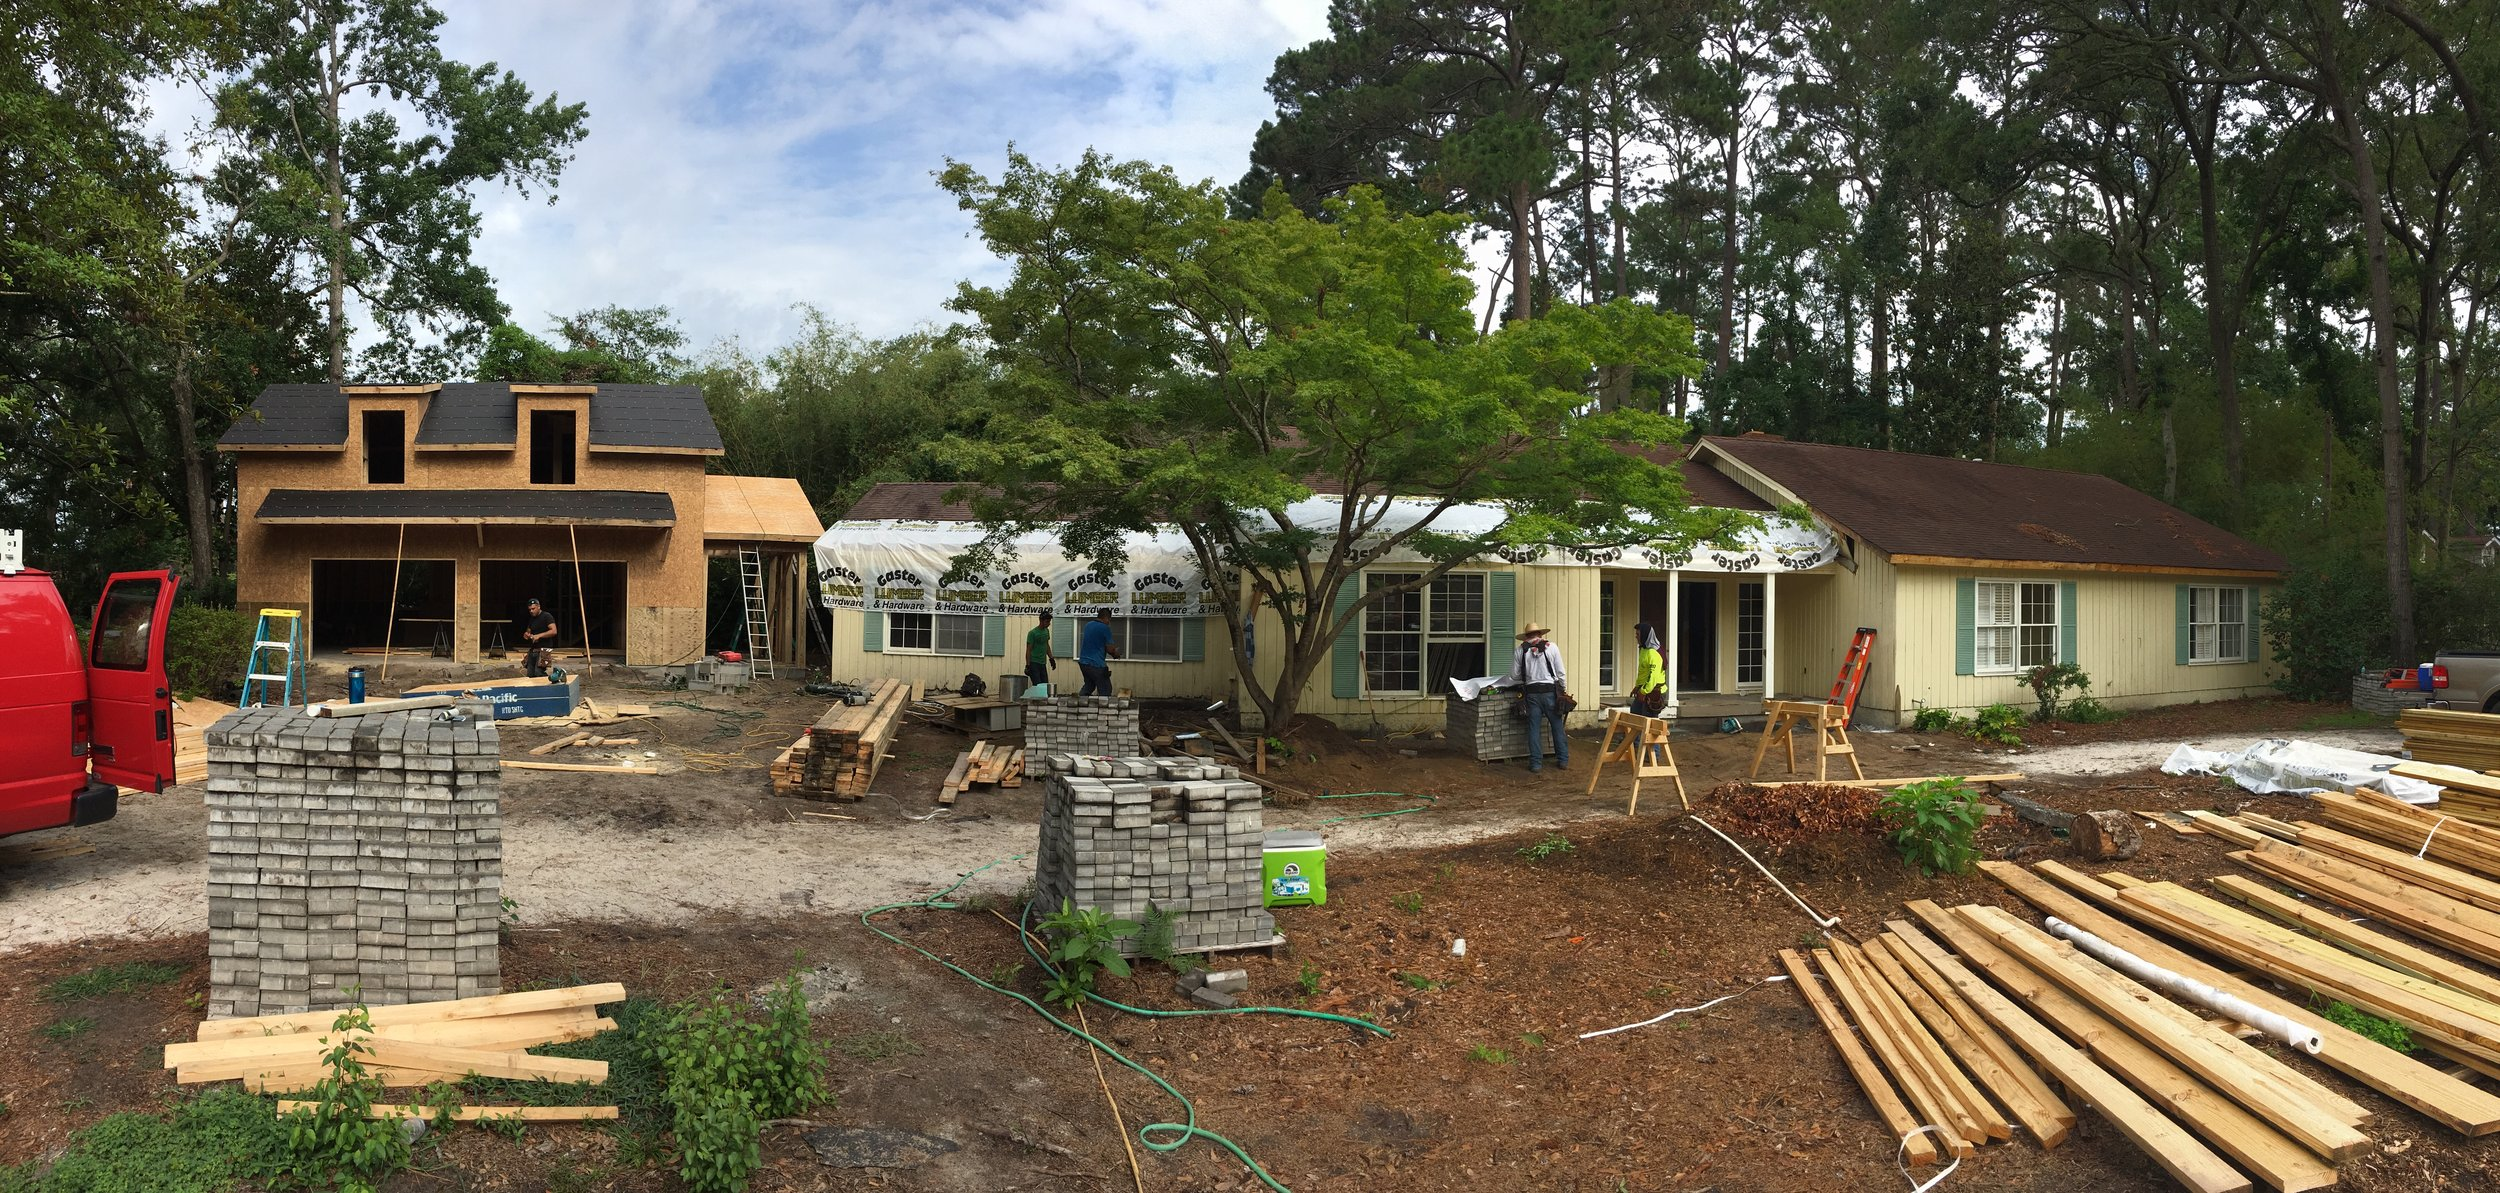 Complete Home Update - Construction of a 800SF two-story garage, whole-house interior and exterior renovations, redesign the 3-bed/2-bath home to become sprawling 5 bed/3.5 bath home, complete update of all interior finishes.SEE MORE